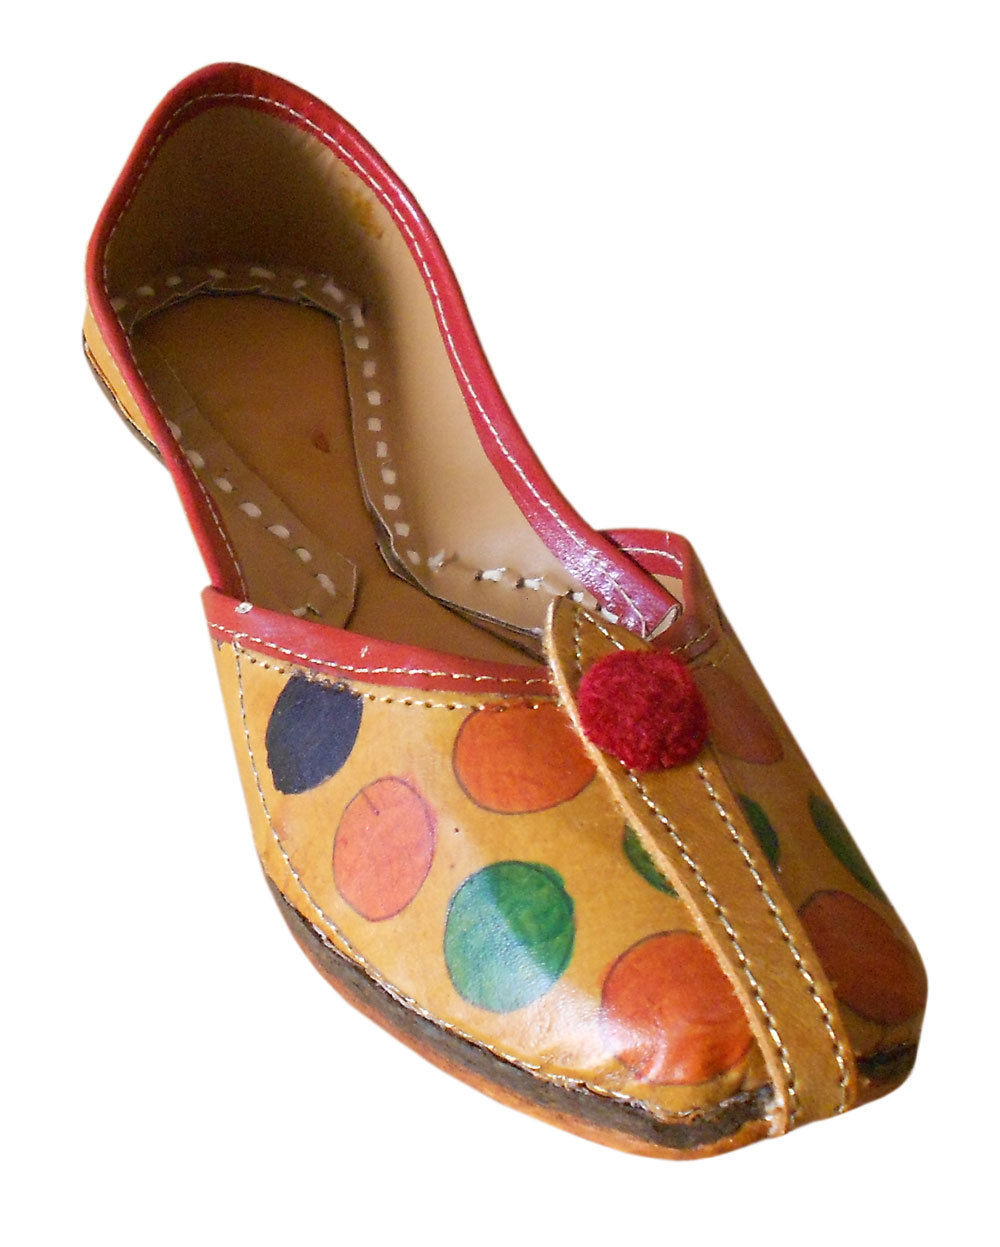 Primary image for Women Shoes Indian Handmade Rajasthani Brown Ballet Flats Mojari US 5.5-8.5